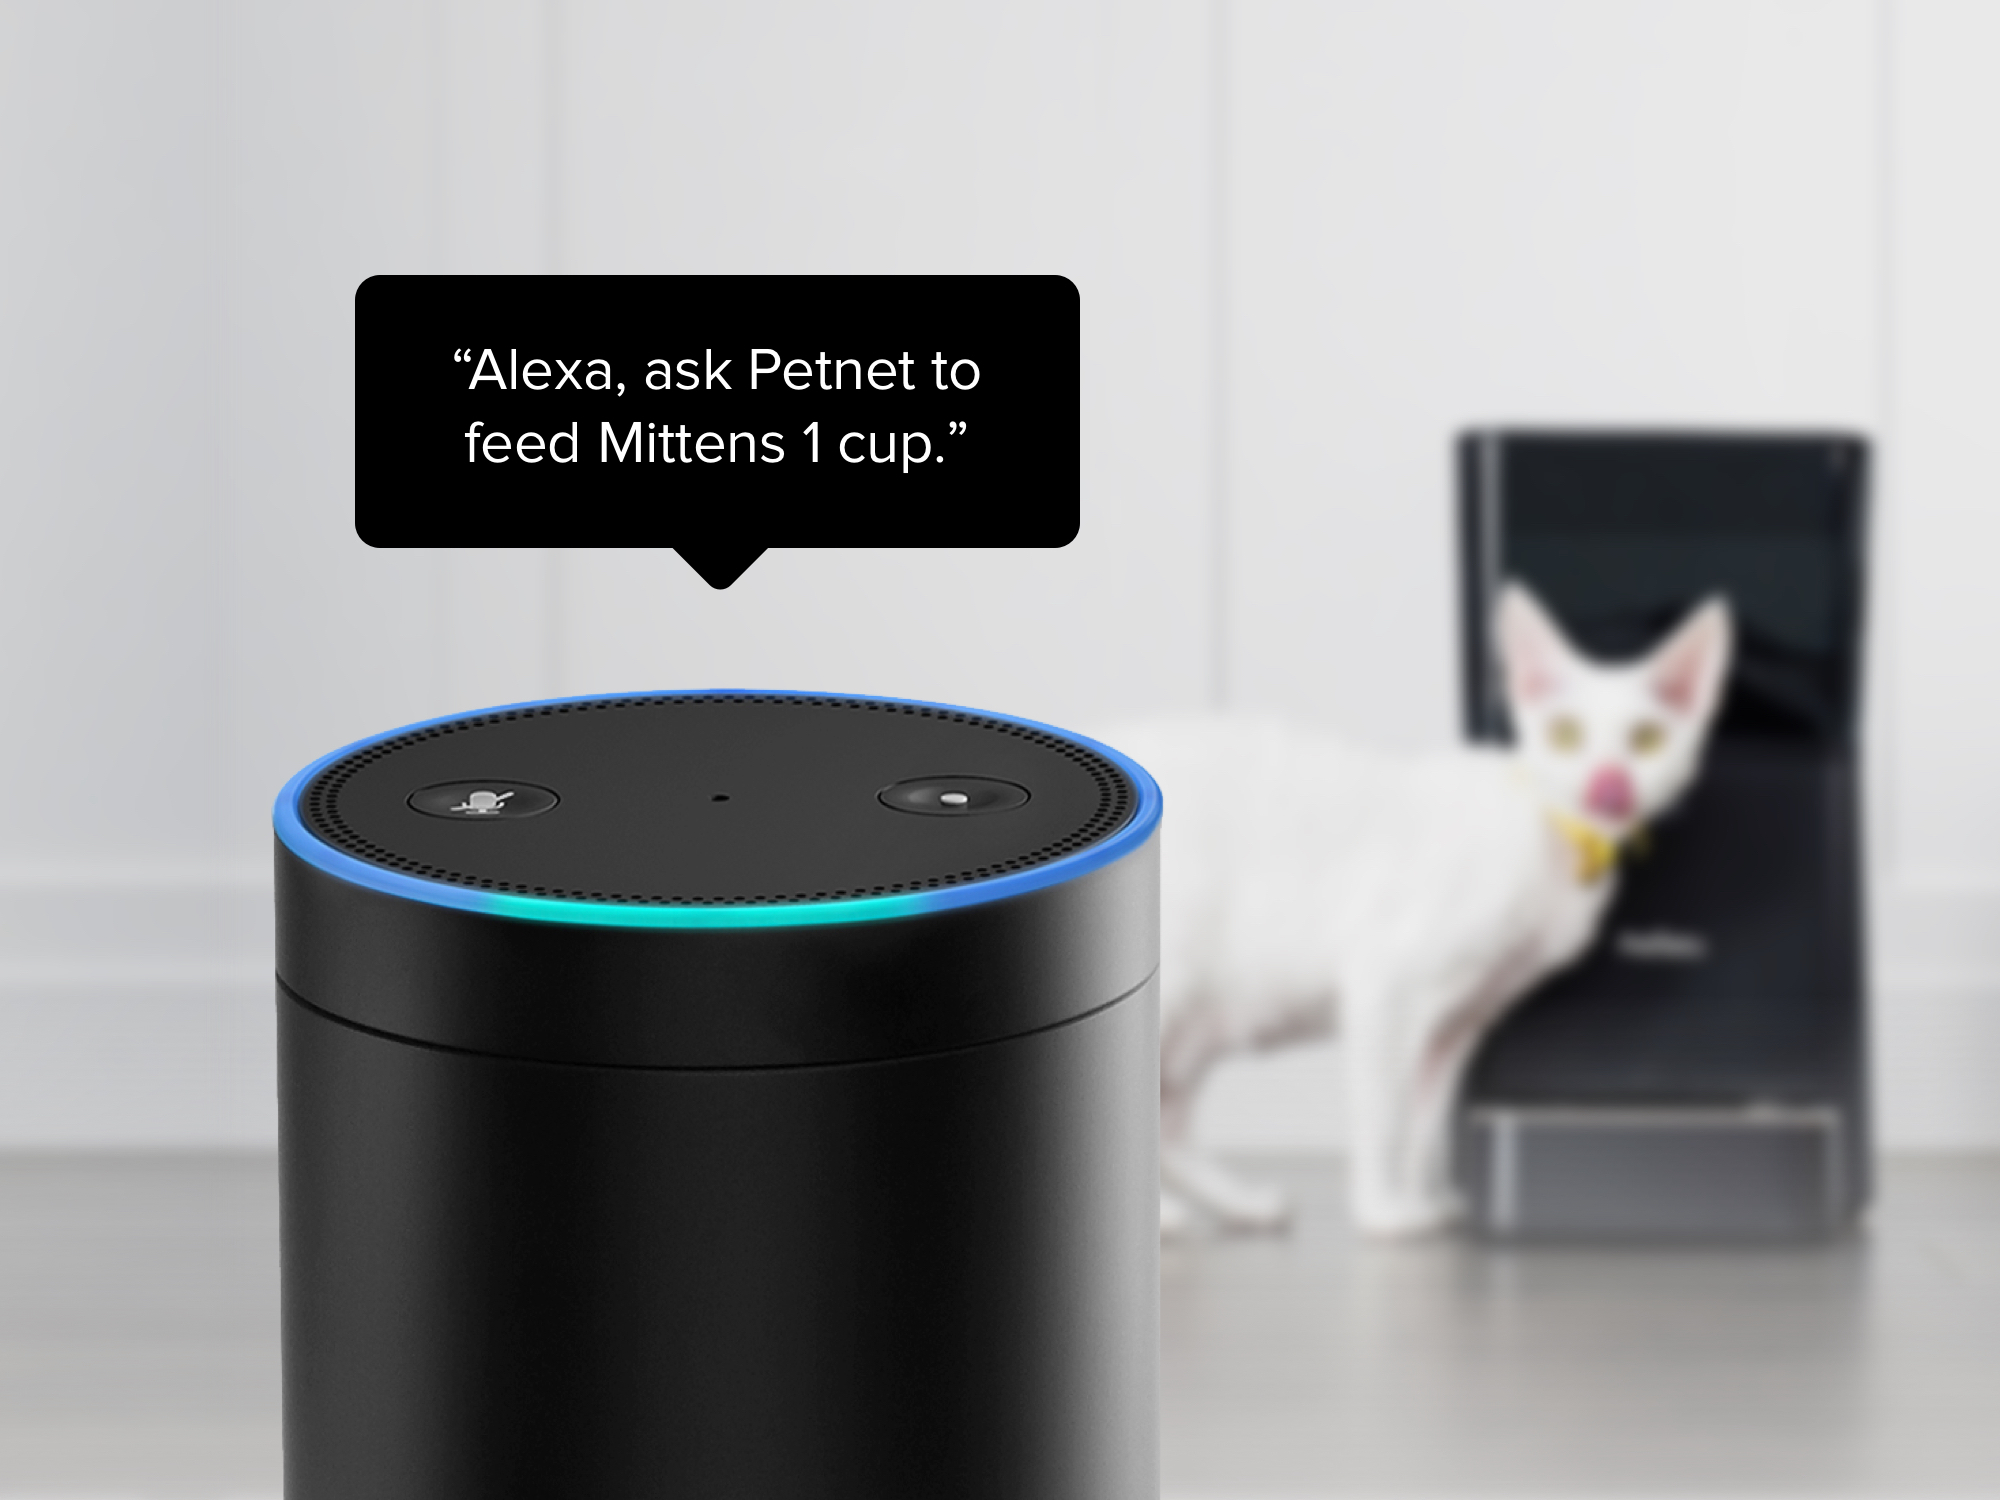 Best Buy To Introduce Amazon Alexa, Google Home To 700 Locations